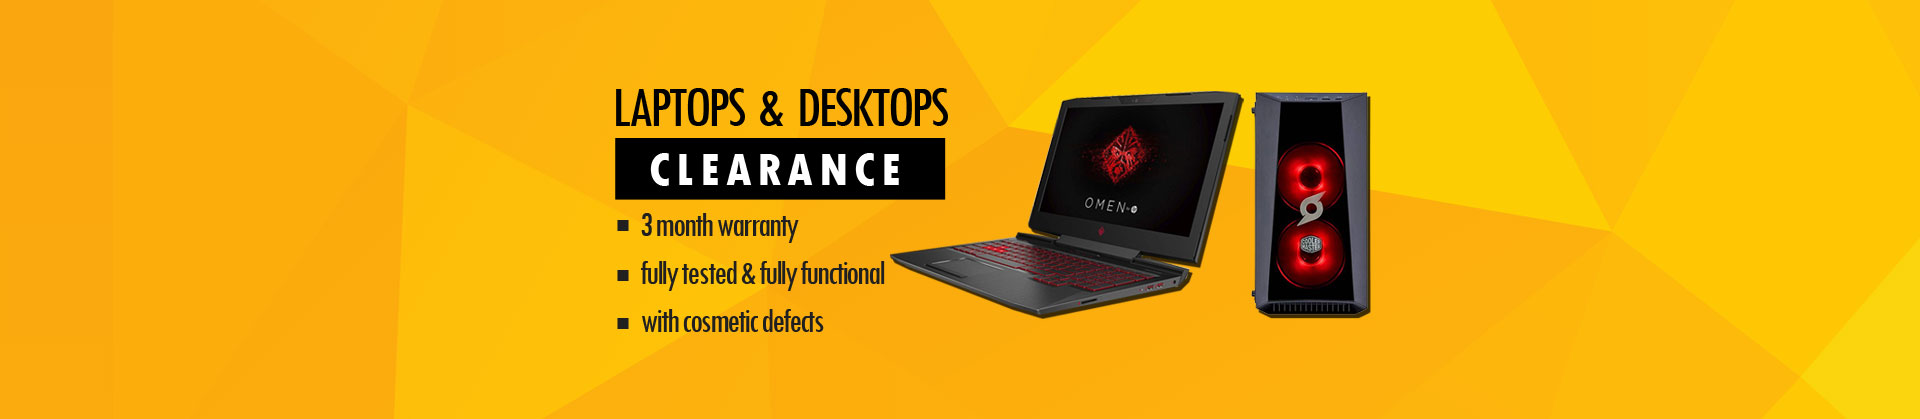 Clearance on C Grade PC & Laptops from only £64.99